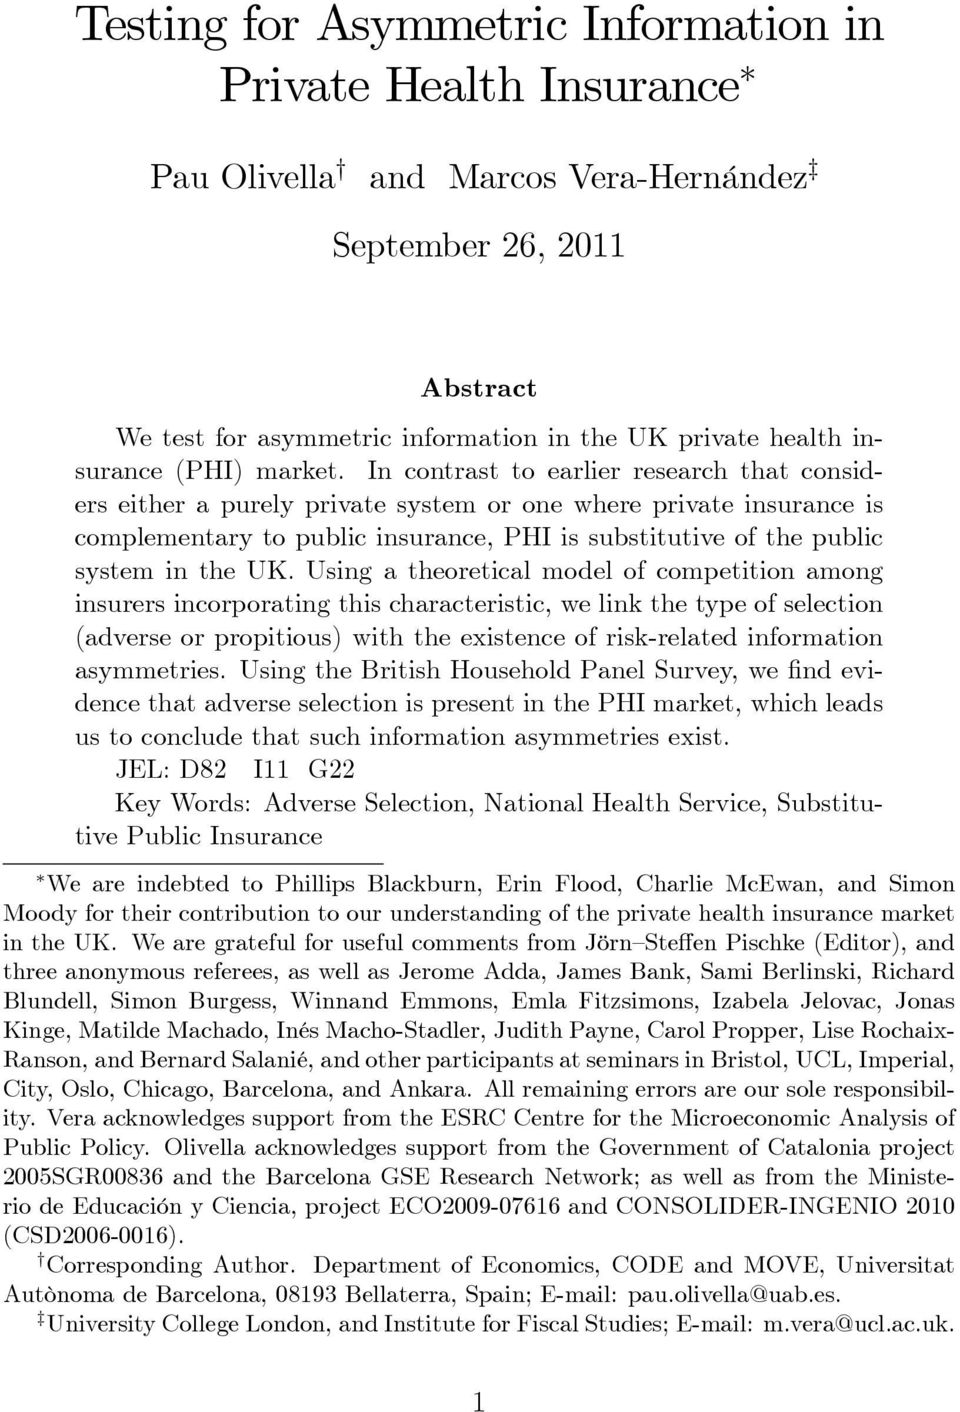 In contrast to earlier research that considers either a purely private system or one where private insurance is complementary to public insurance, PHI is substitutive of the public system in the UK.